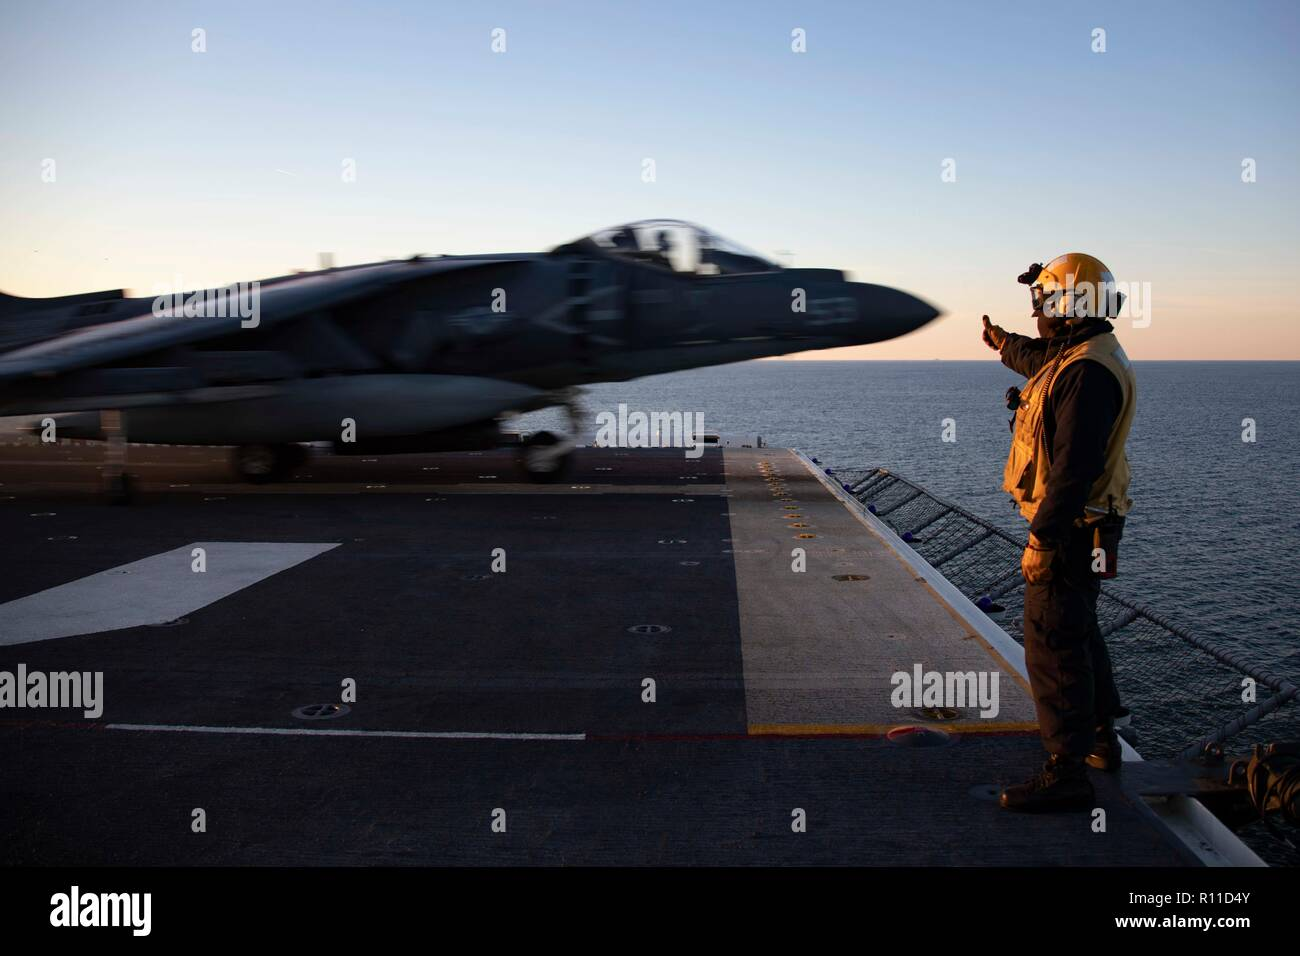 A U.S. Marine Corps AV-8B Harrier fighter jet, takes off from the flight deck of the Wasp-class amphibious assault ship USS Kearsarge during Carrier Strike Group composite training unit exercise operations October 31, 2018 in the Atlantic Ocean. - Stock Image